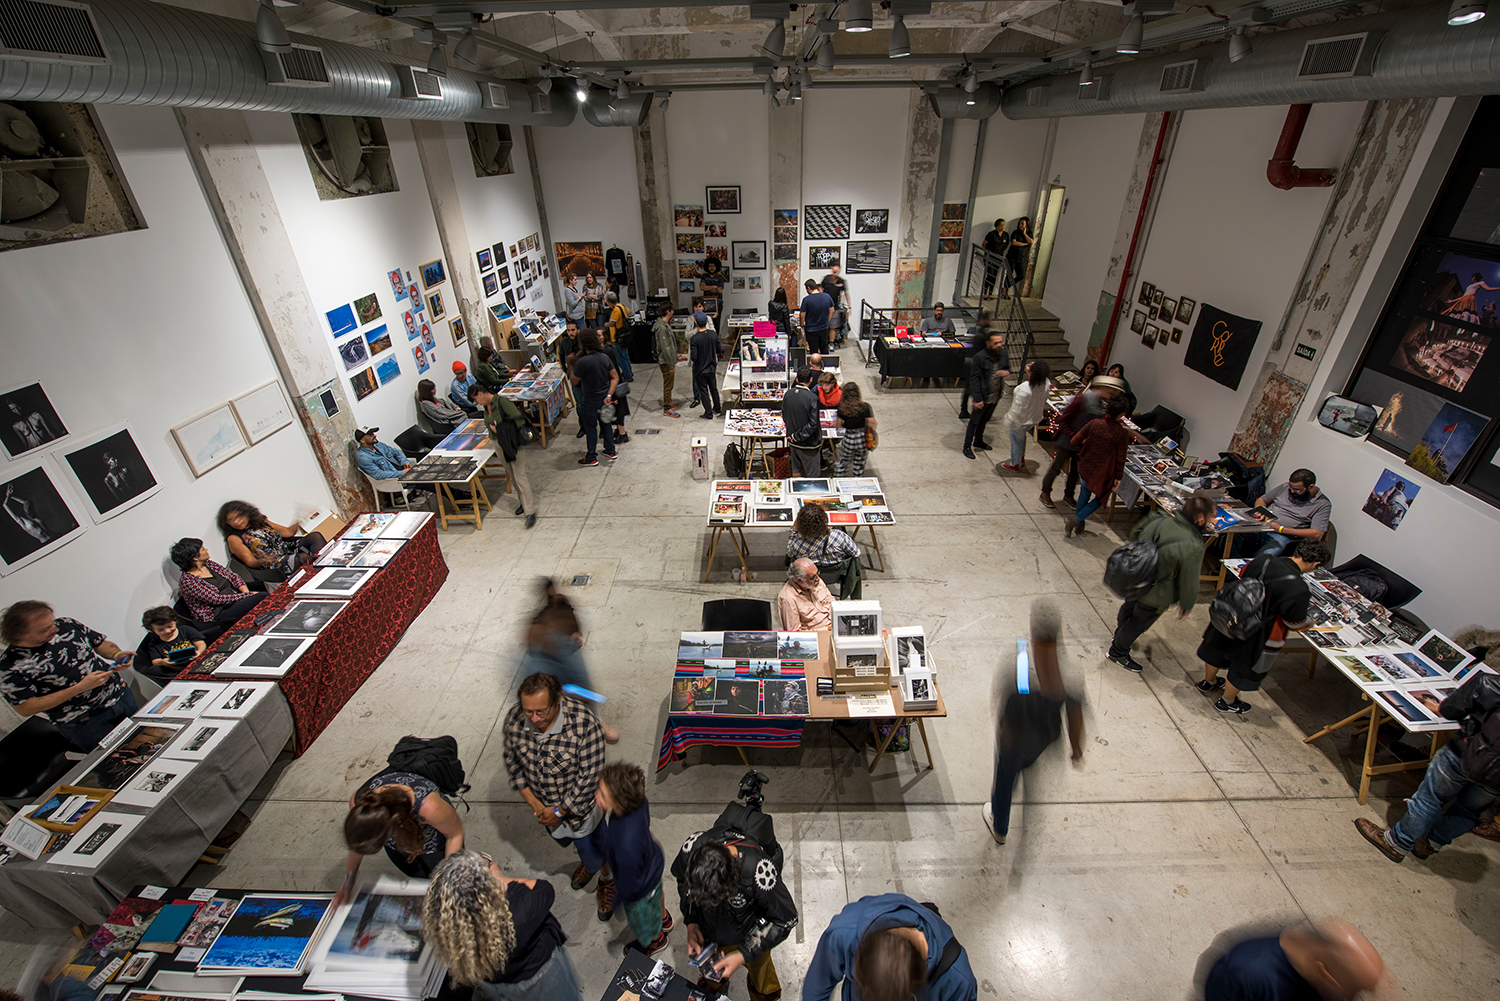 Co-curator of Foto Invasão, a photo festival with installations, projections, collective exhibition, debates, workshops, prints fair | Red Bull Station, São Paulo, 2016 and 2018. Prints Fair, Photo Ignacio Aronovich